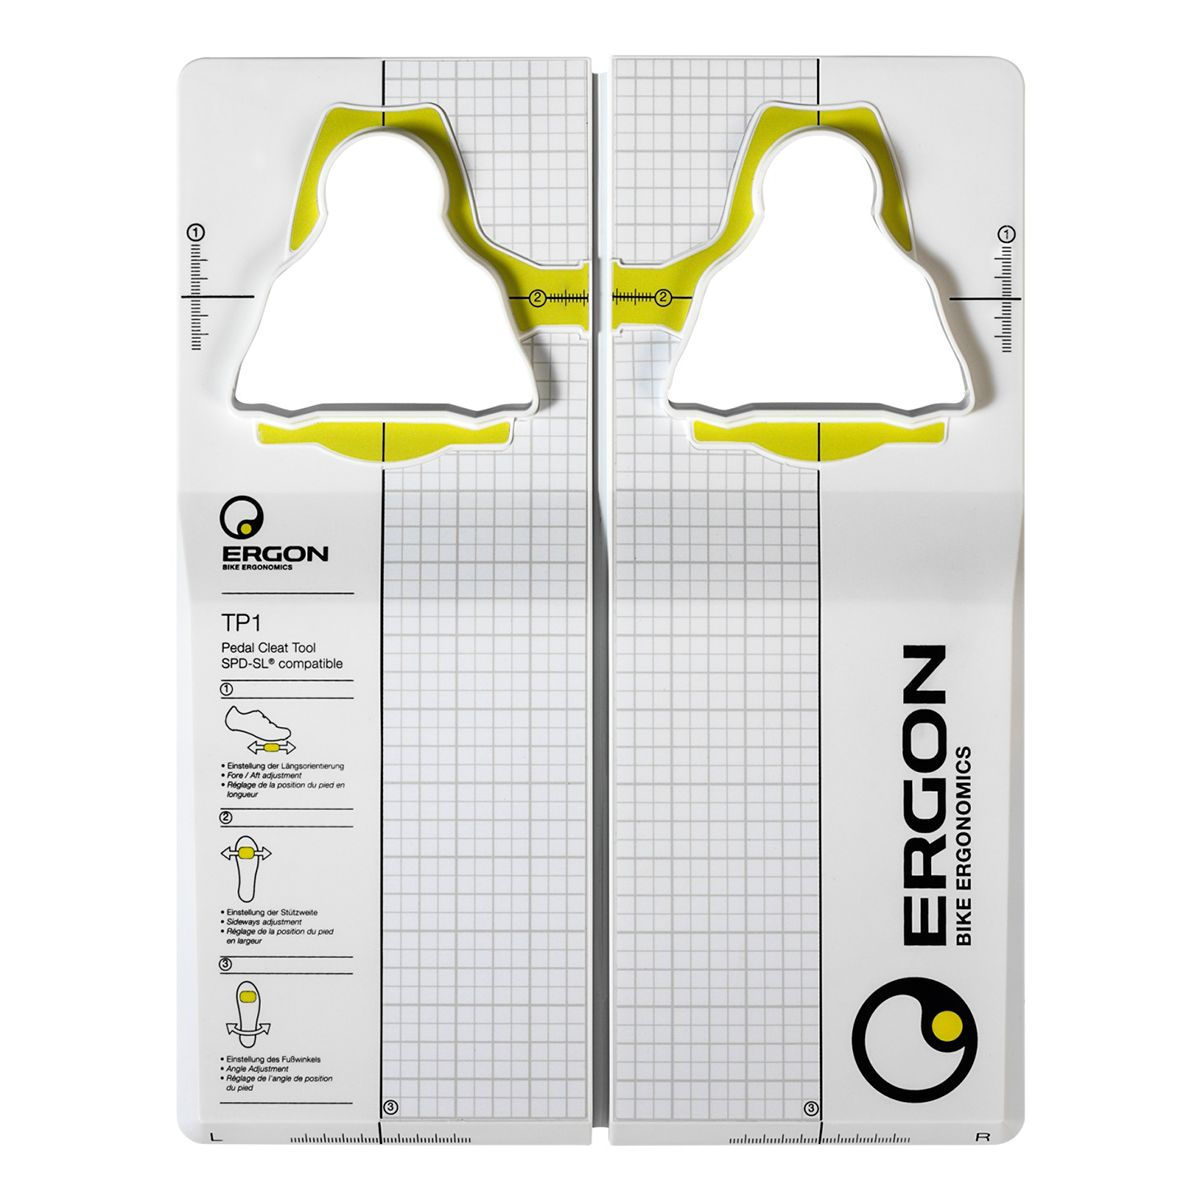 Ergon TP-1 Pedal Cleat Tool SPD-SL